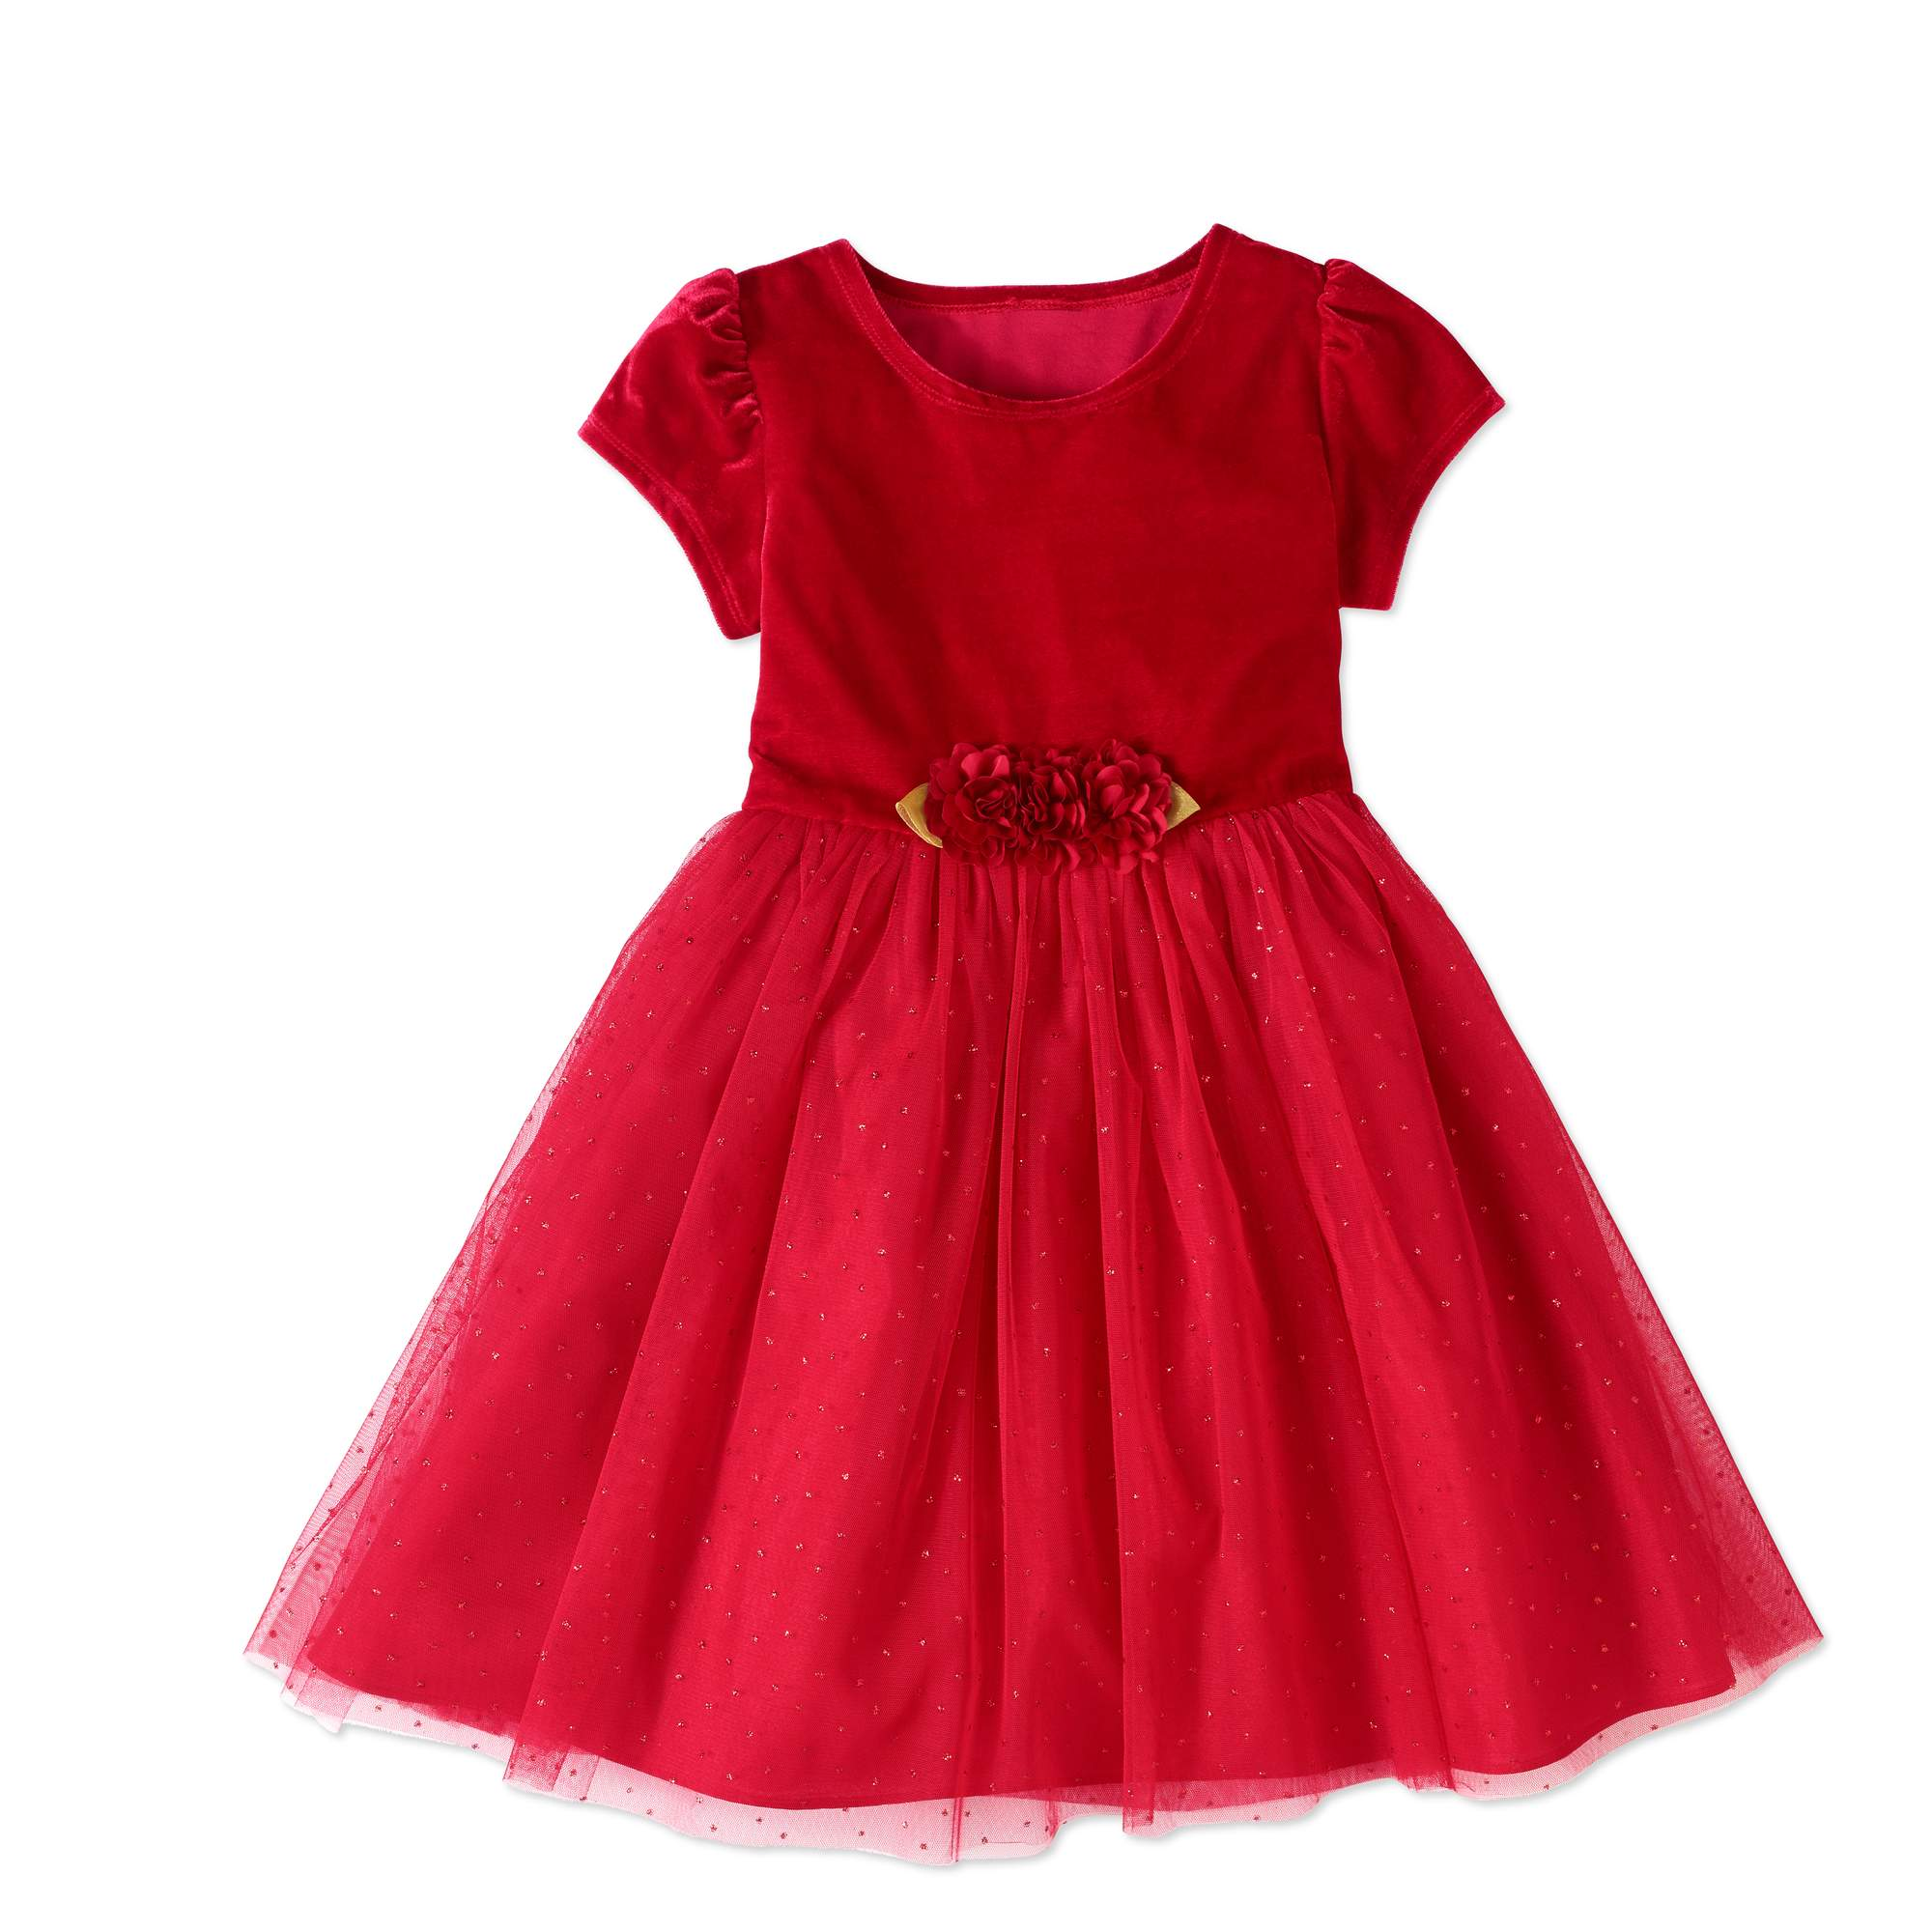 George Girls' Glitter Ballerina Dress